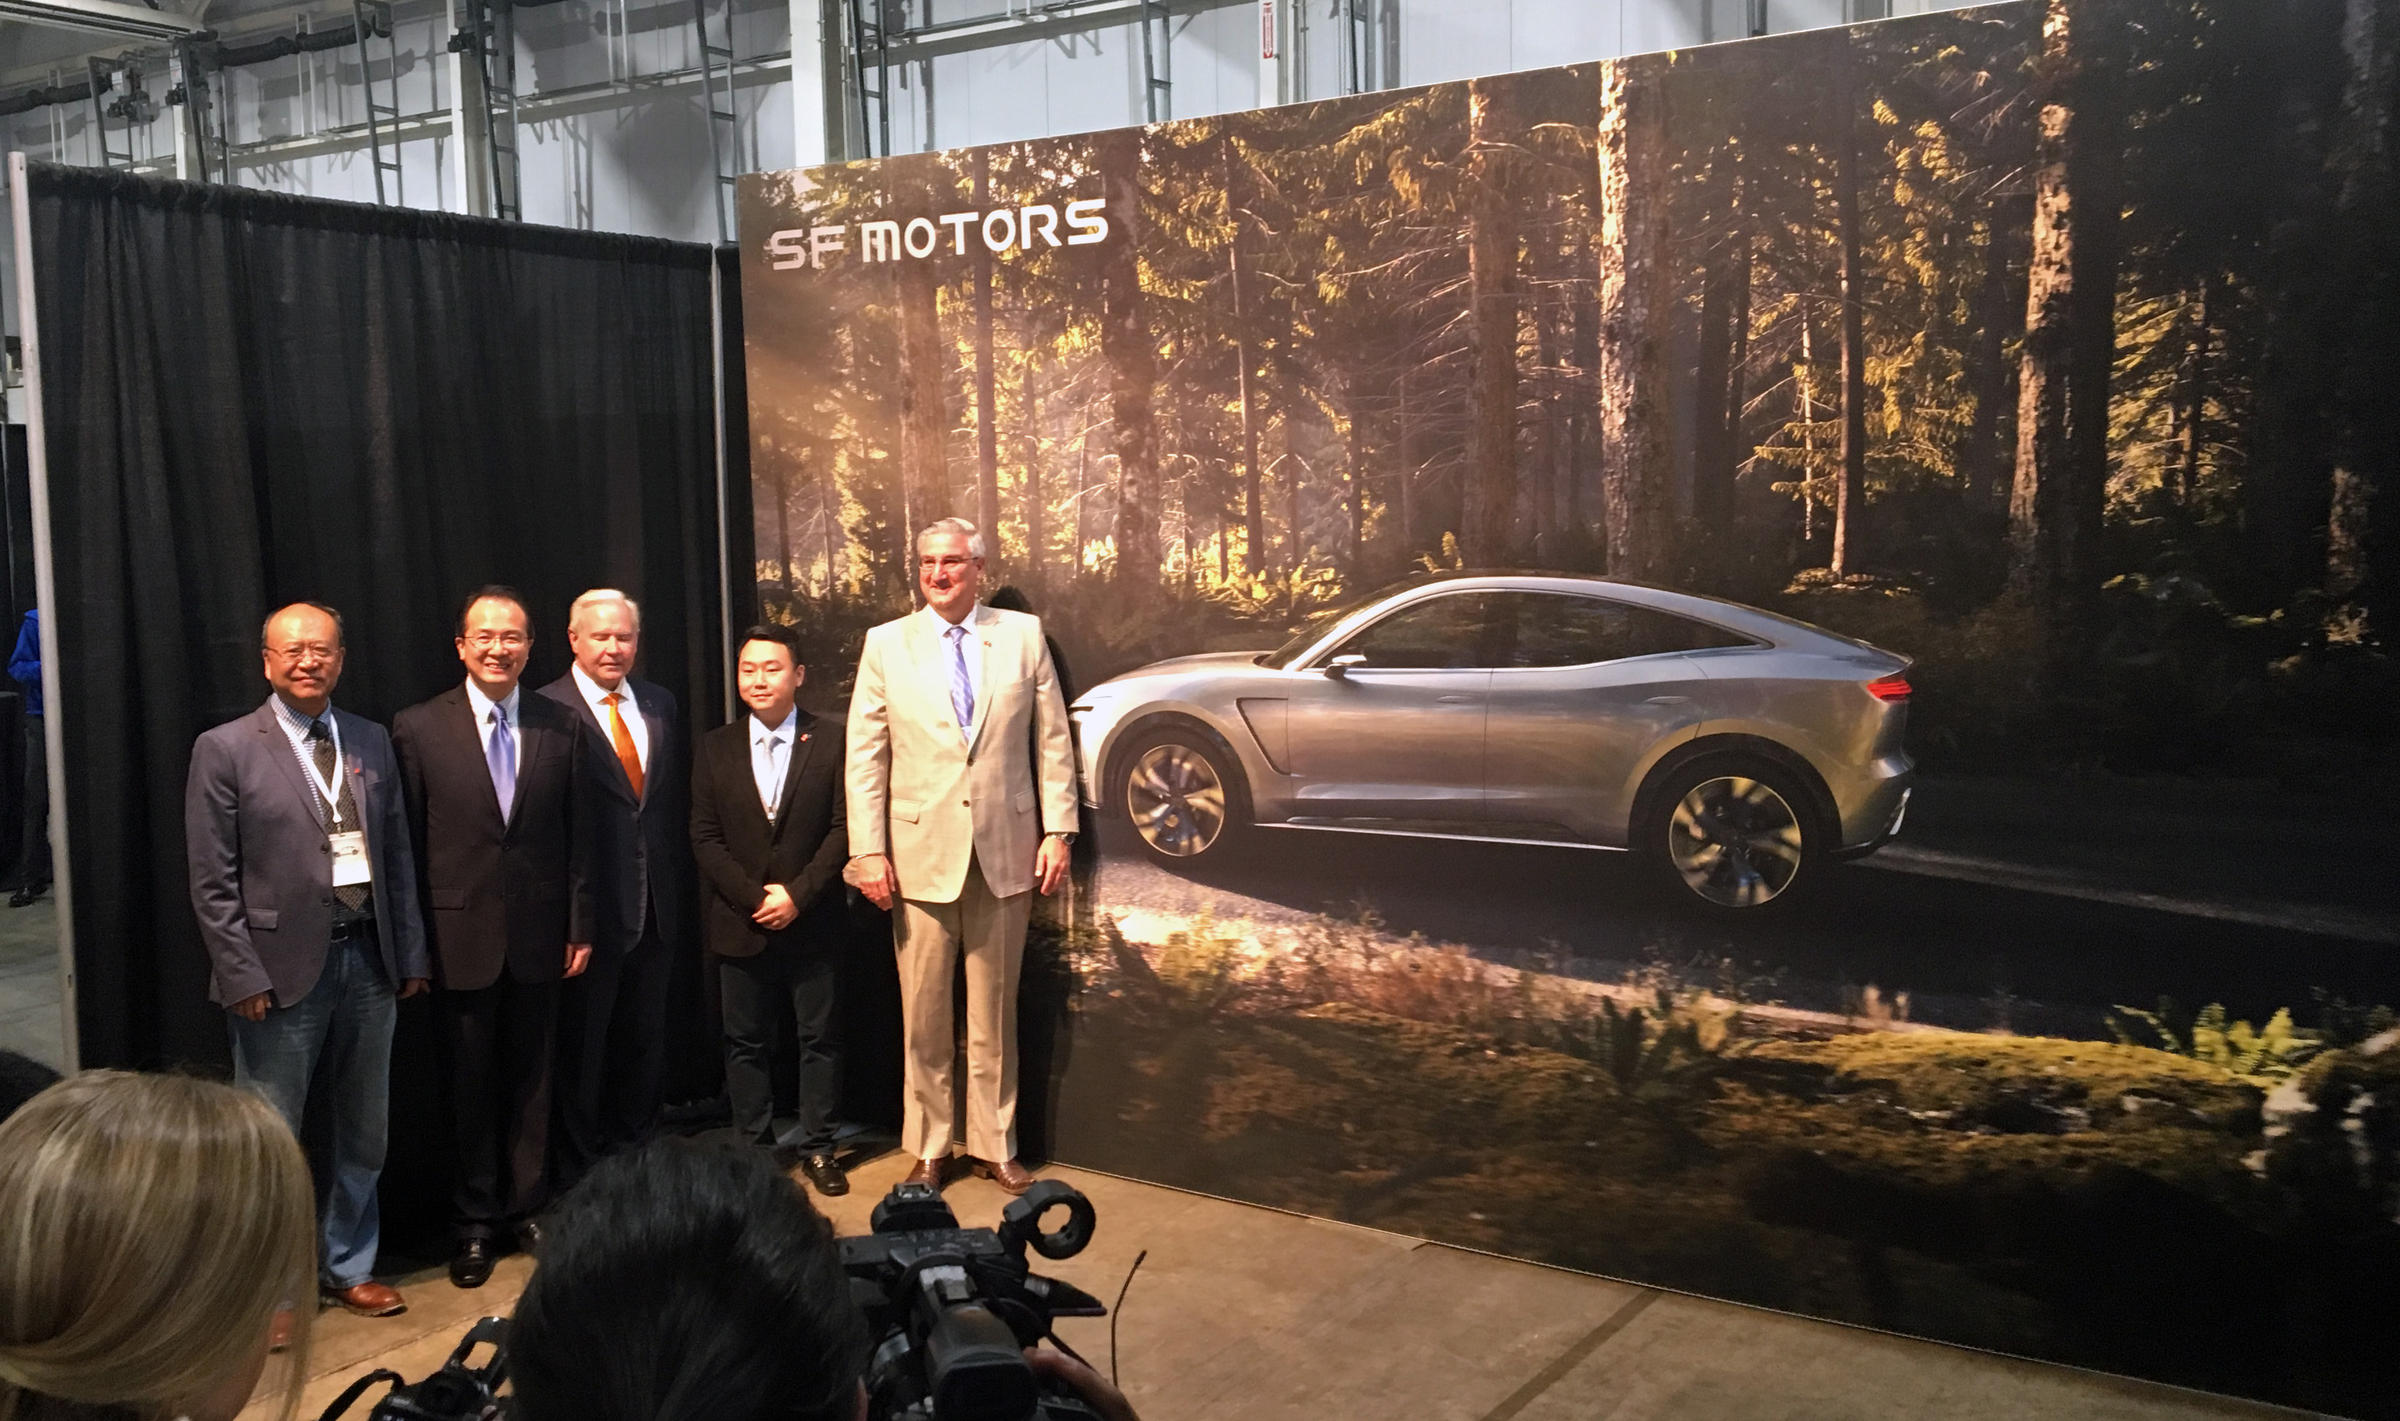 Governor Eric Holcomb poses with Indiana Secretary of Commerce Jim Schellinger, SF Motors CEO John Zhang and other SF officials in the Mishawaka EVAP.